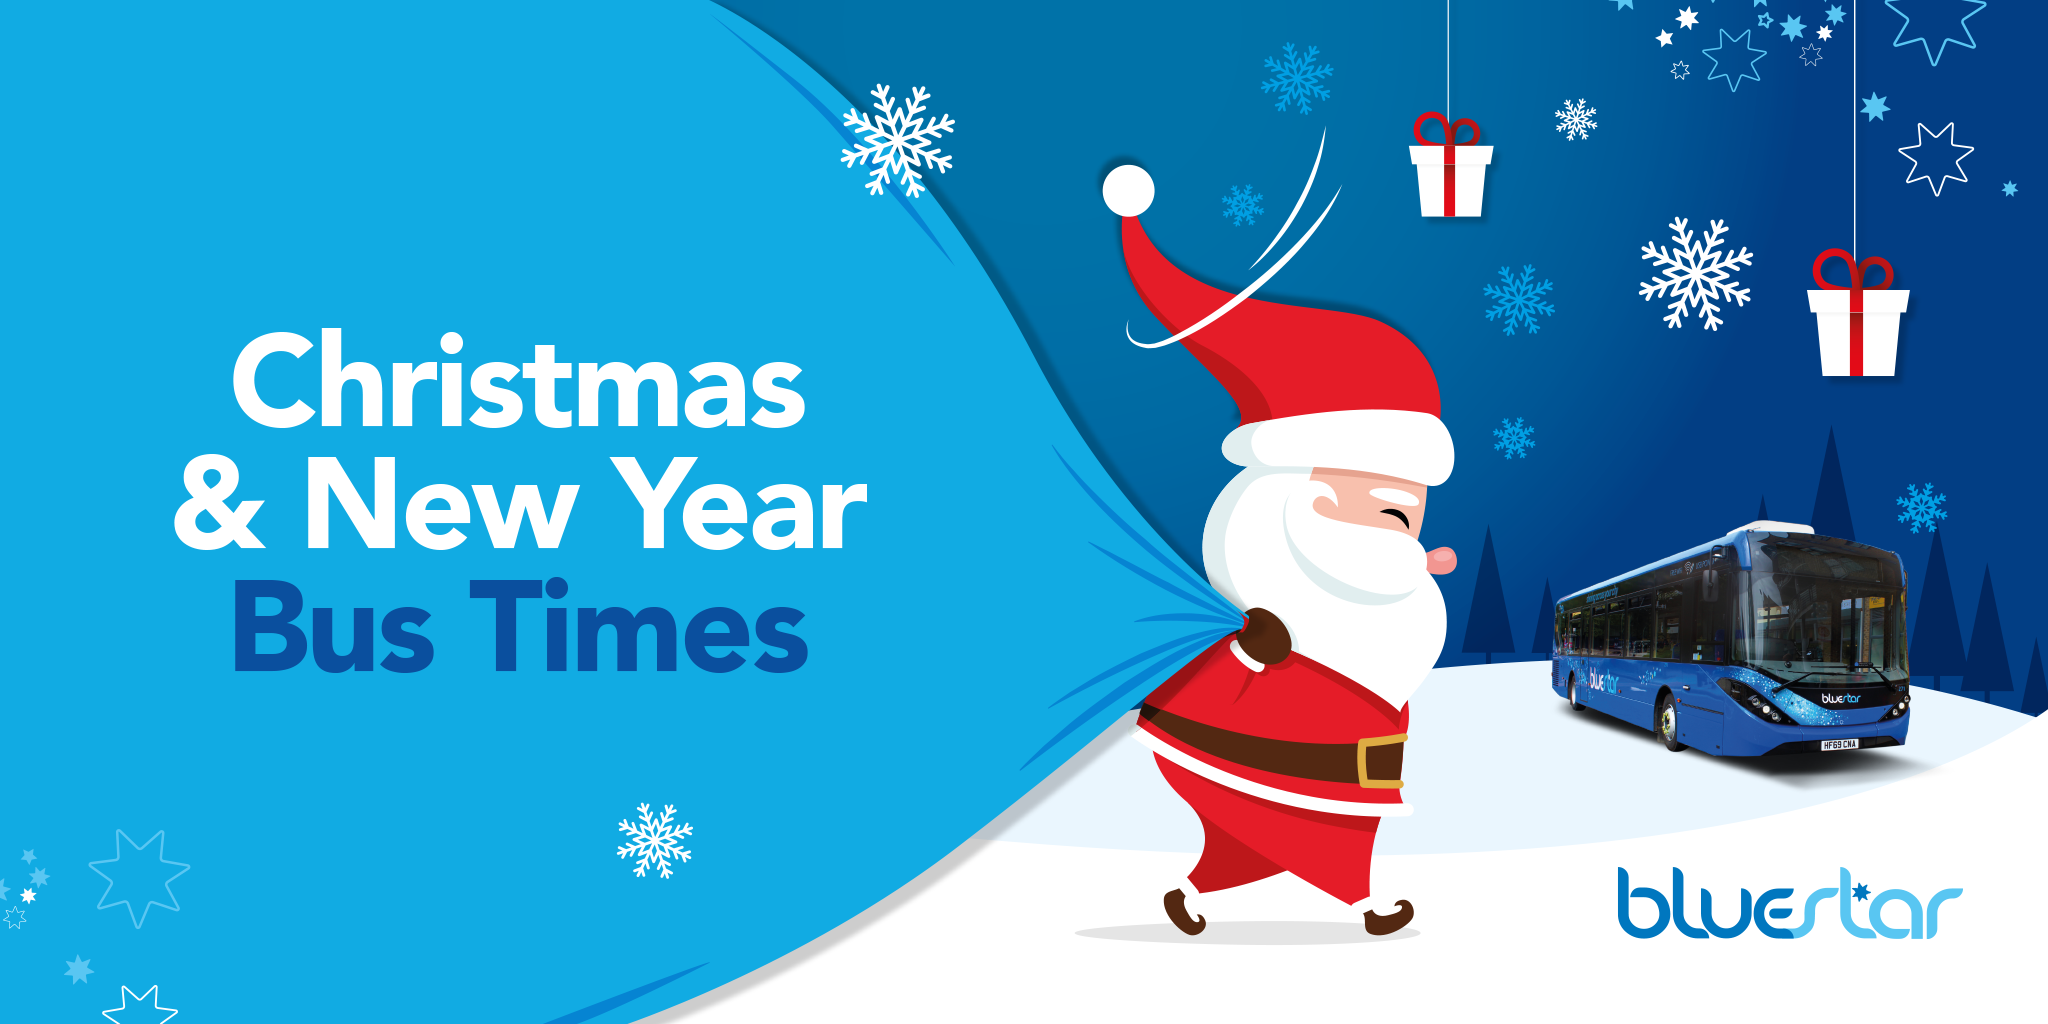 Image of Santa pulling a sack next to a Bluestar bus with text reading 'Christmas & New Year Bus Times'